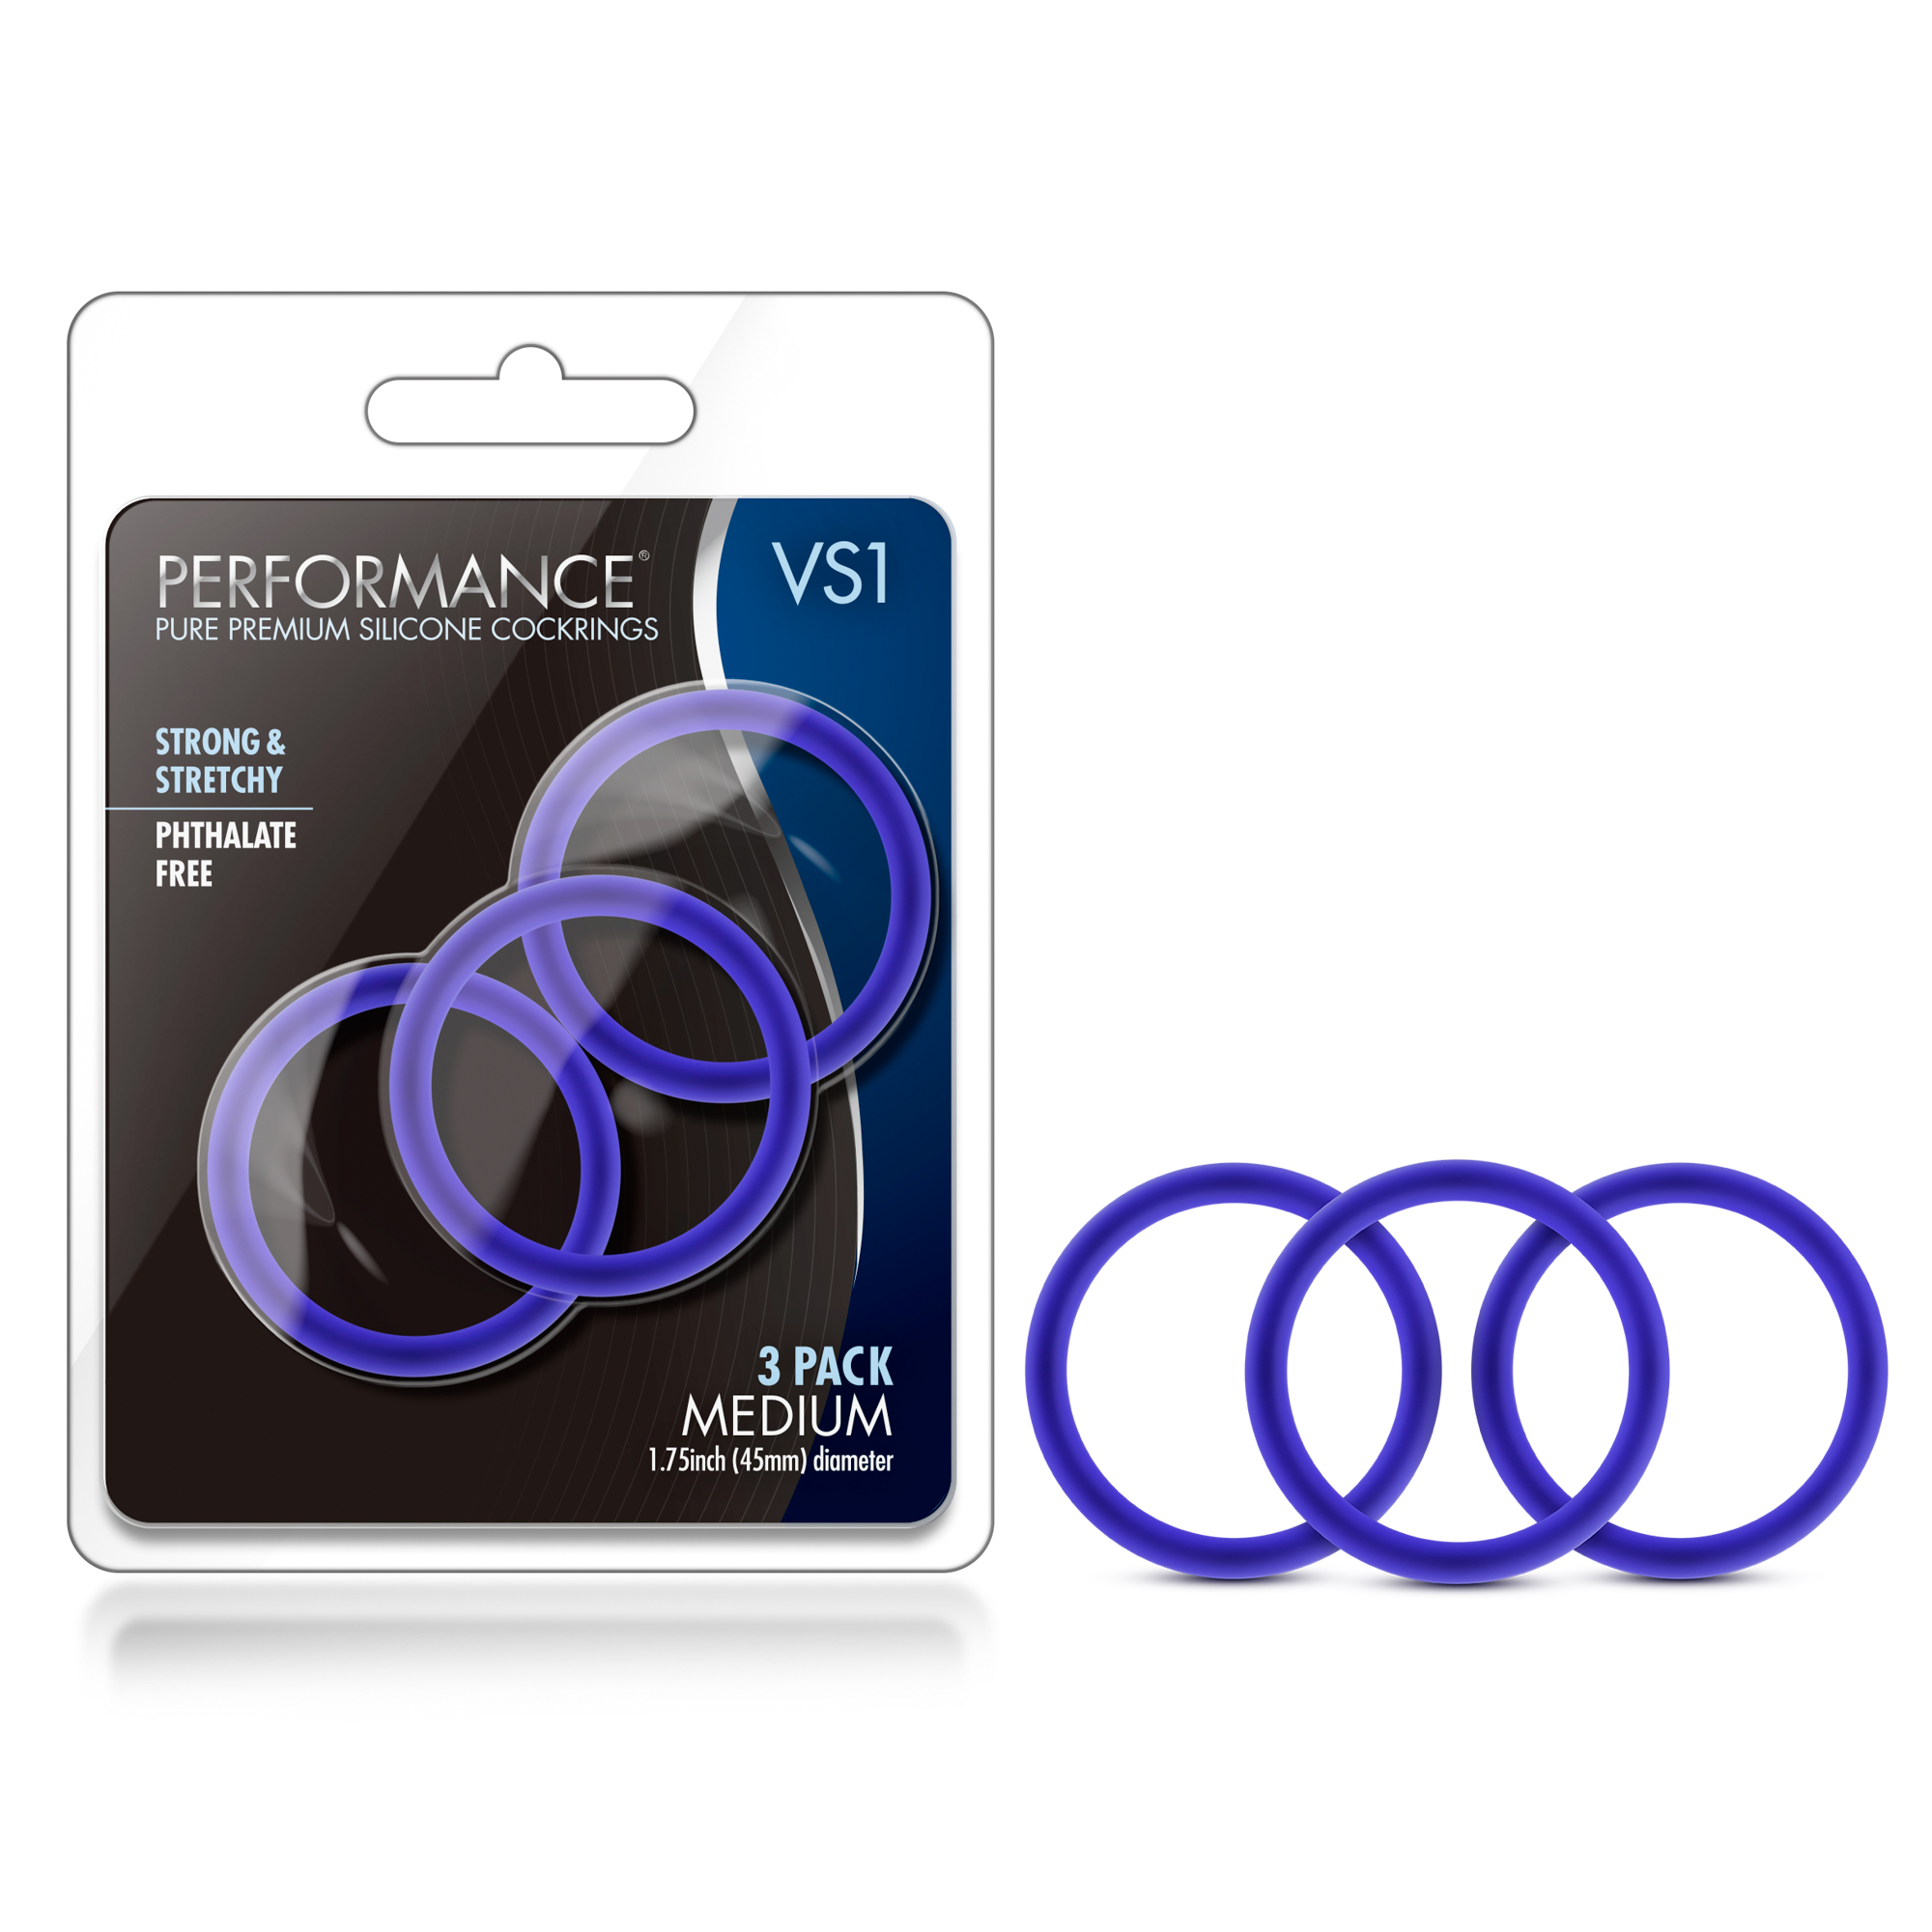 Performance - VS1 Pure Premium Silicone Cockrings - Medium - Indigo